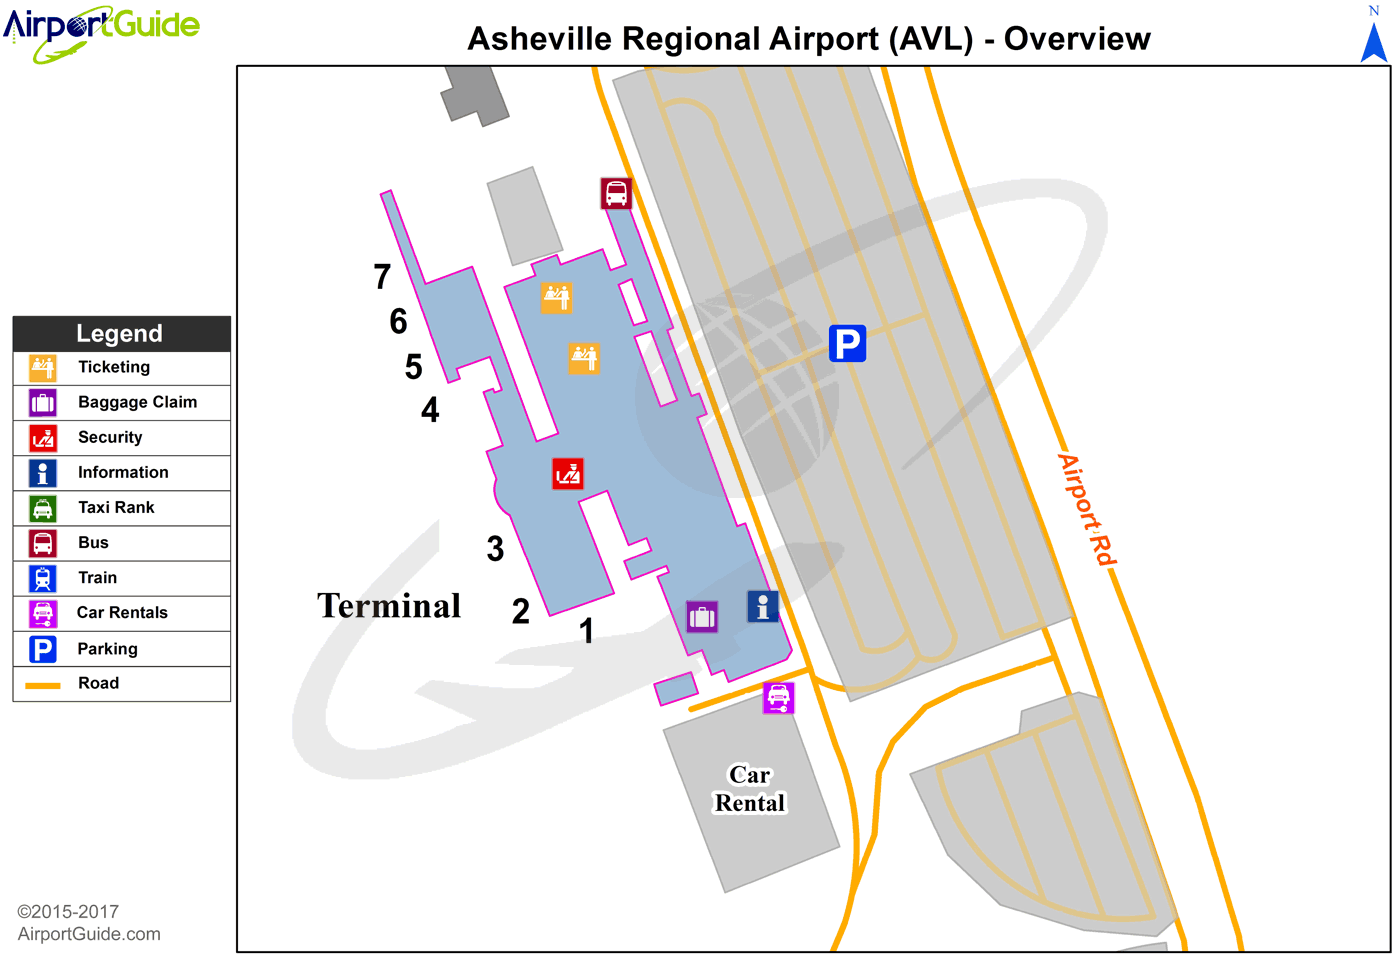 Asheville Asheville Regional Avl Airport Terminal Map Overview Airport Guide Avl Map